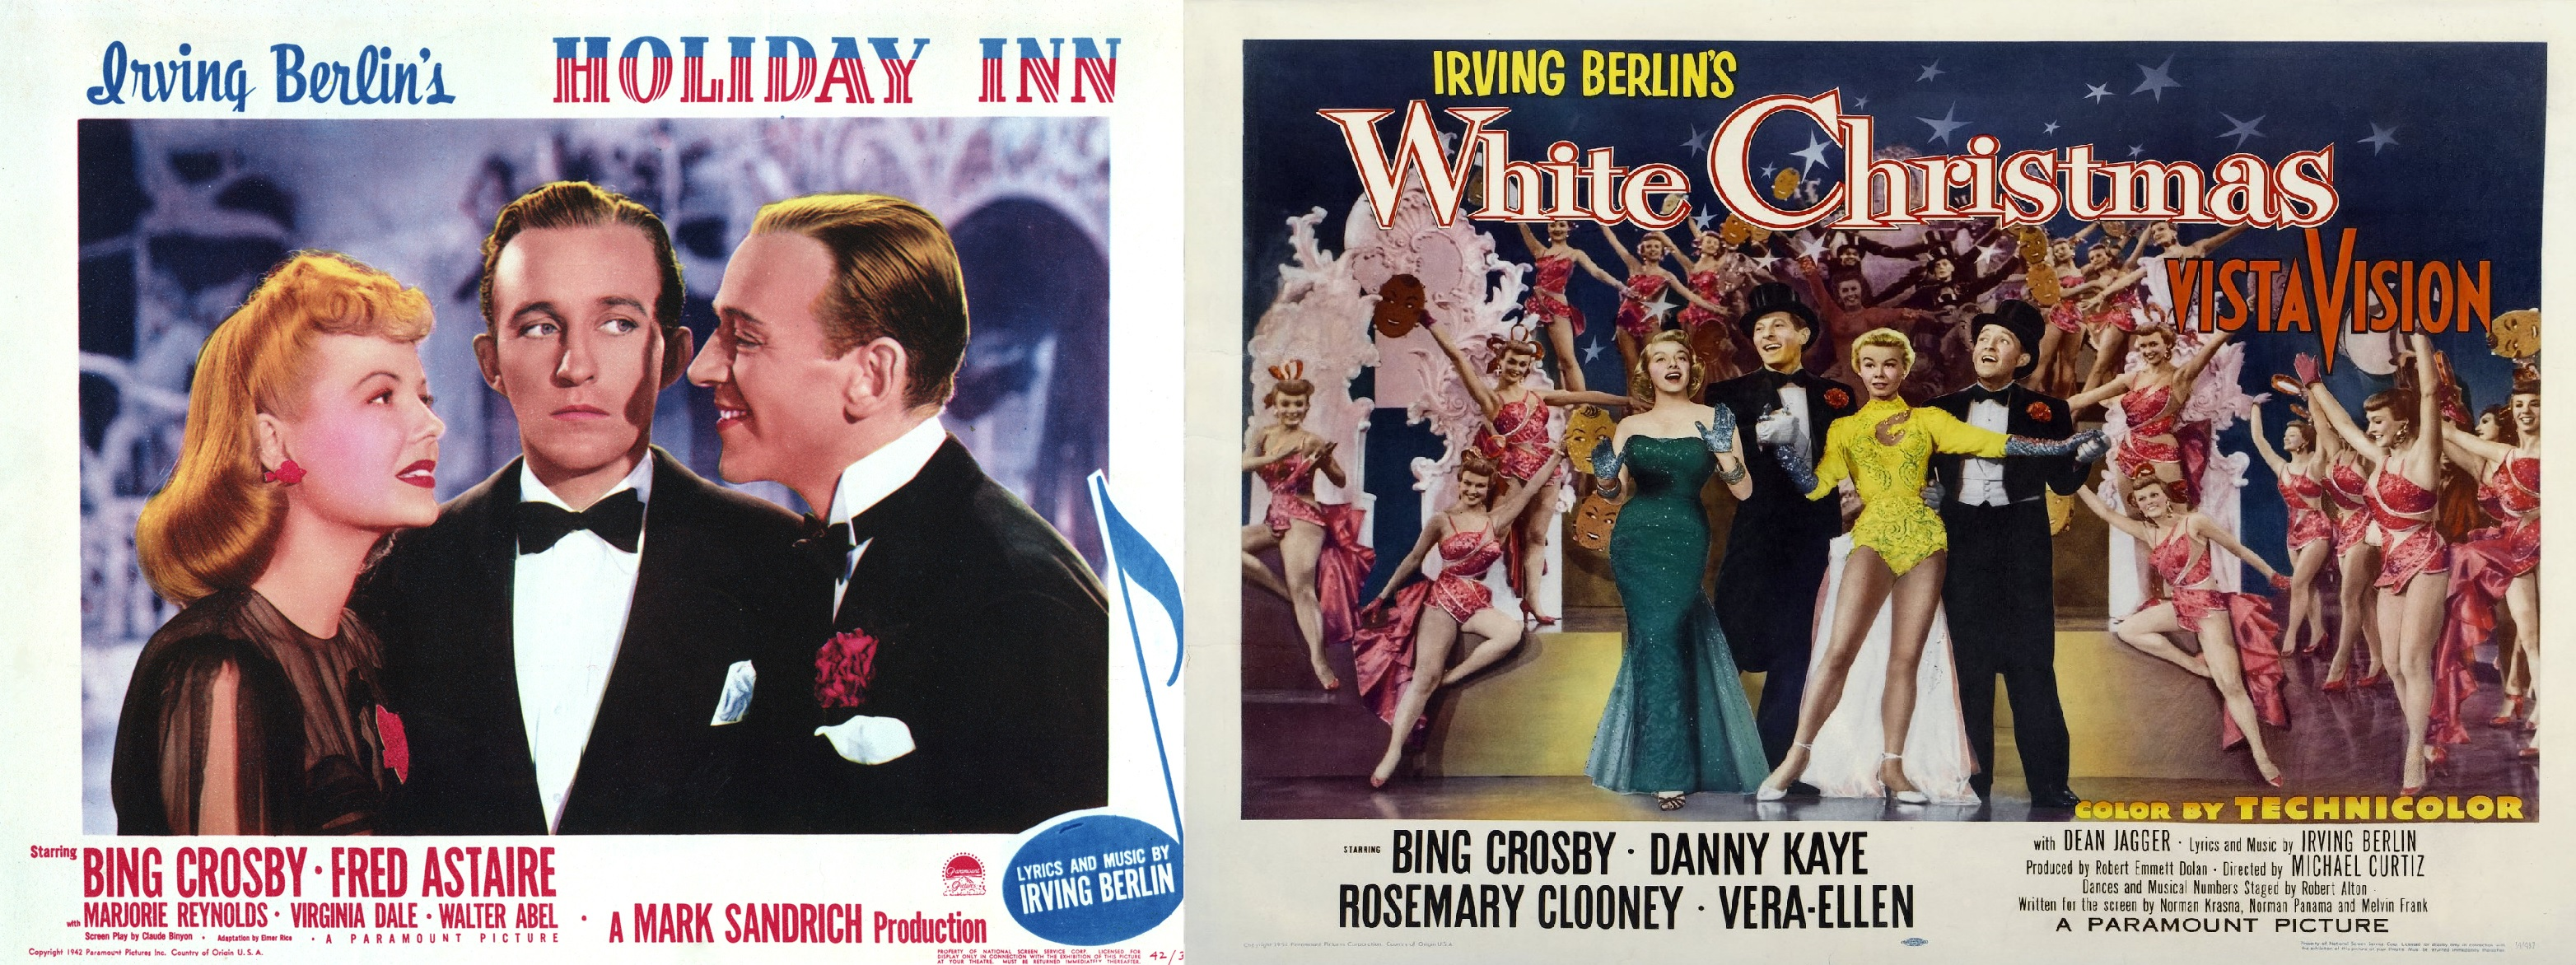 holiday inn white christmas - The Movie White Christmas